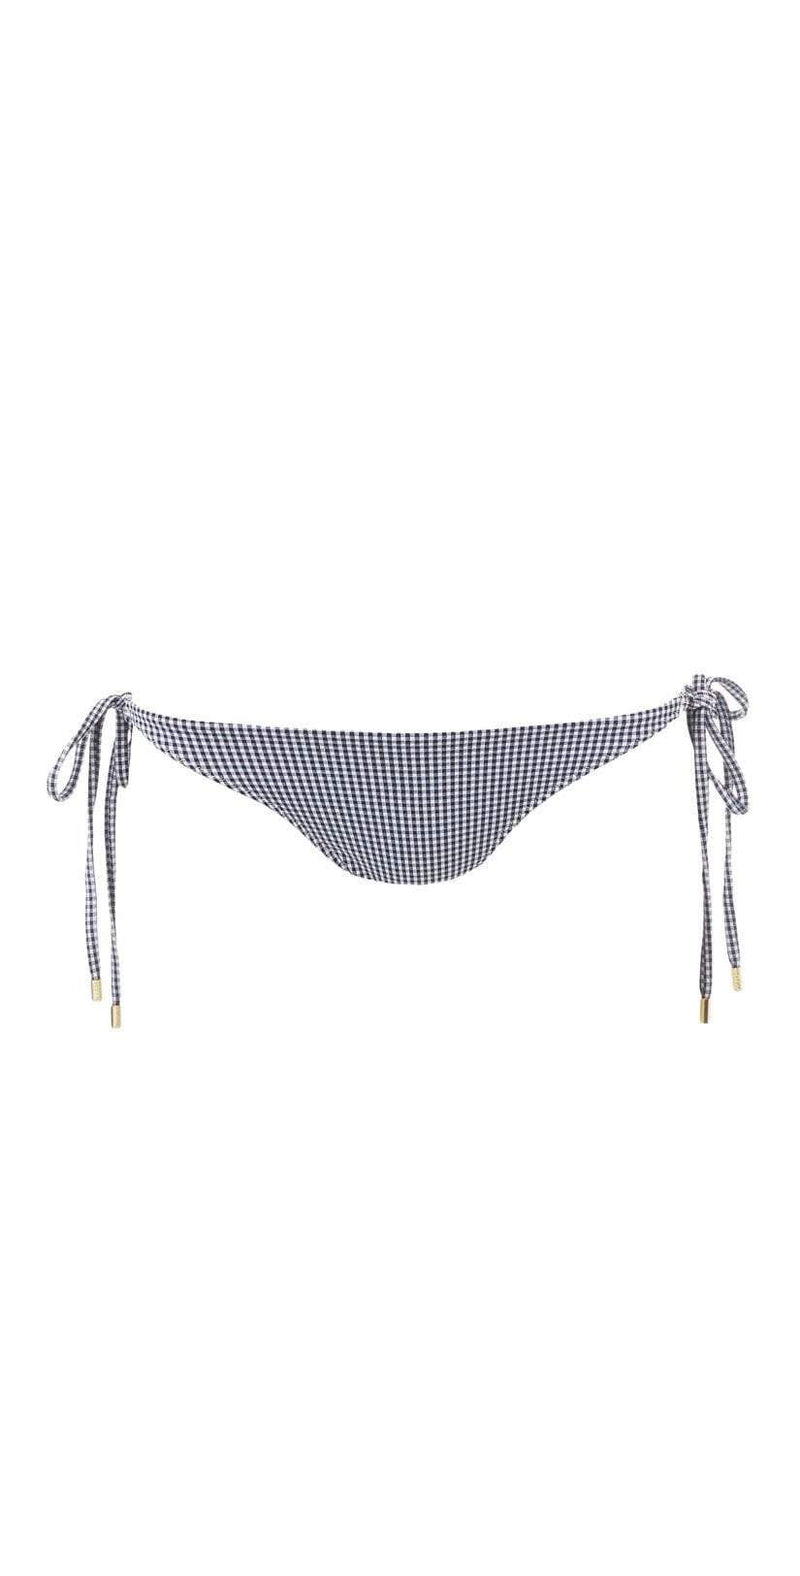 Melissa Odabash Jordan Bottom in Gingham: